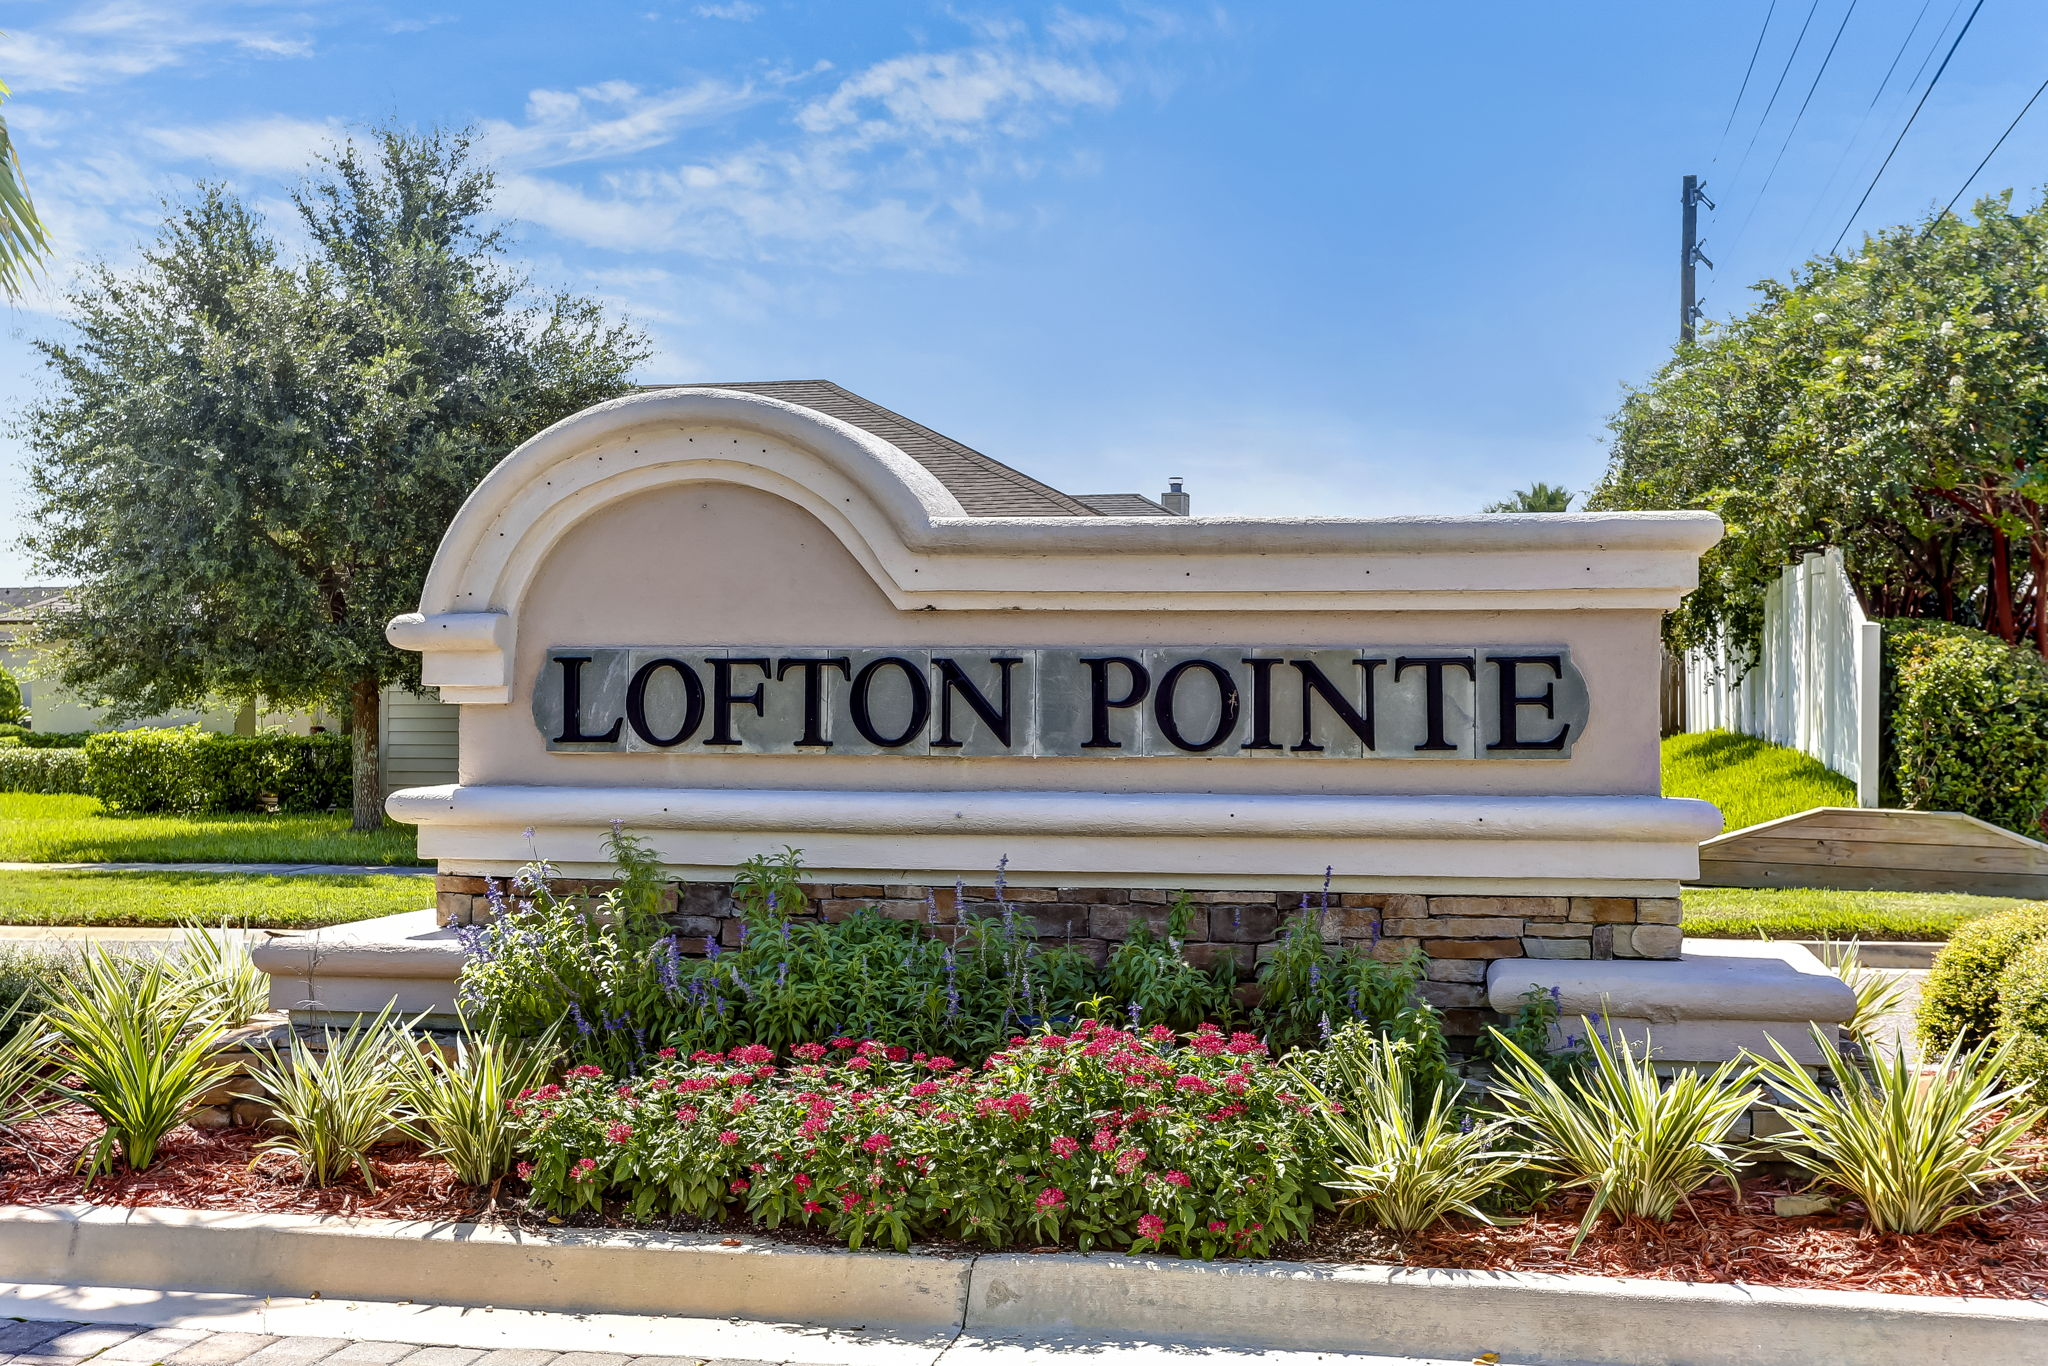 Lofton Pointe